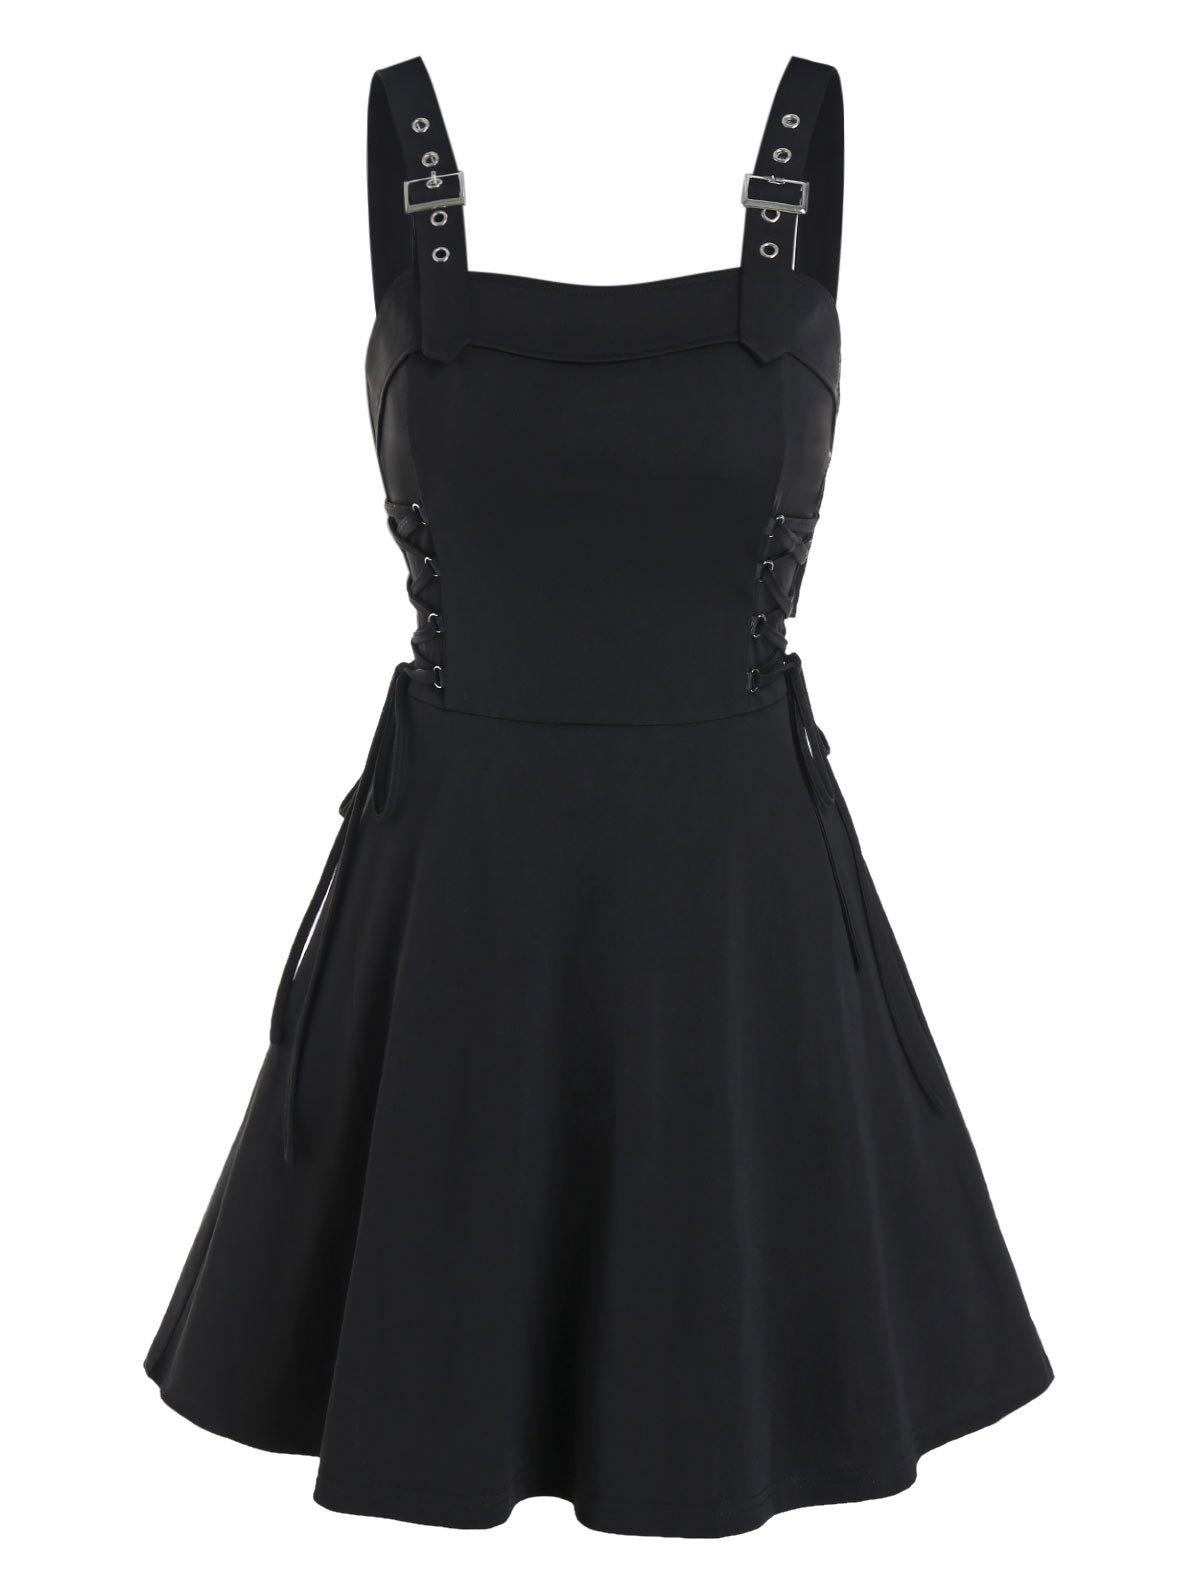 Affordable Buckle Strap Lace-up Sleeveless Mini Dress